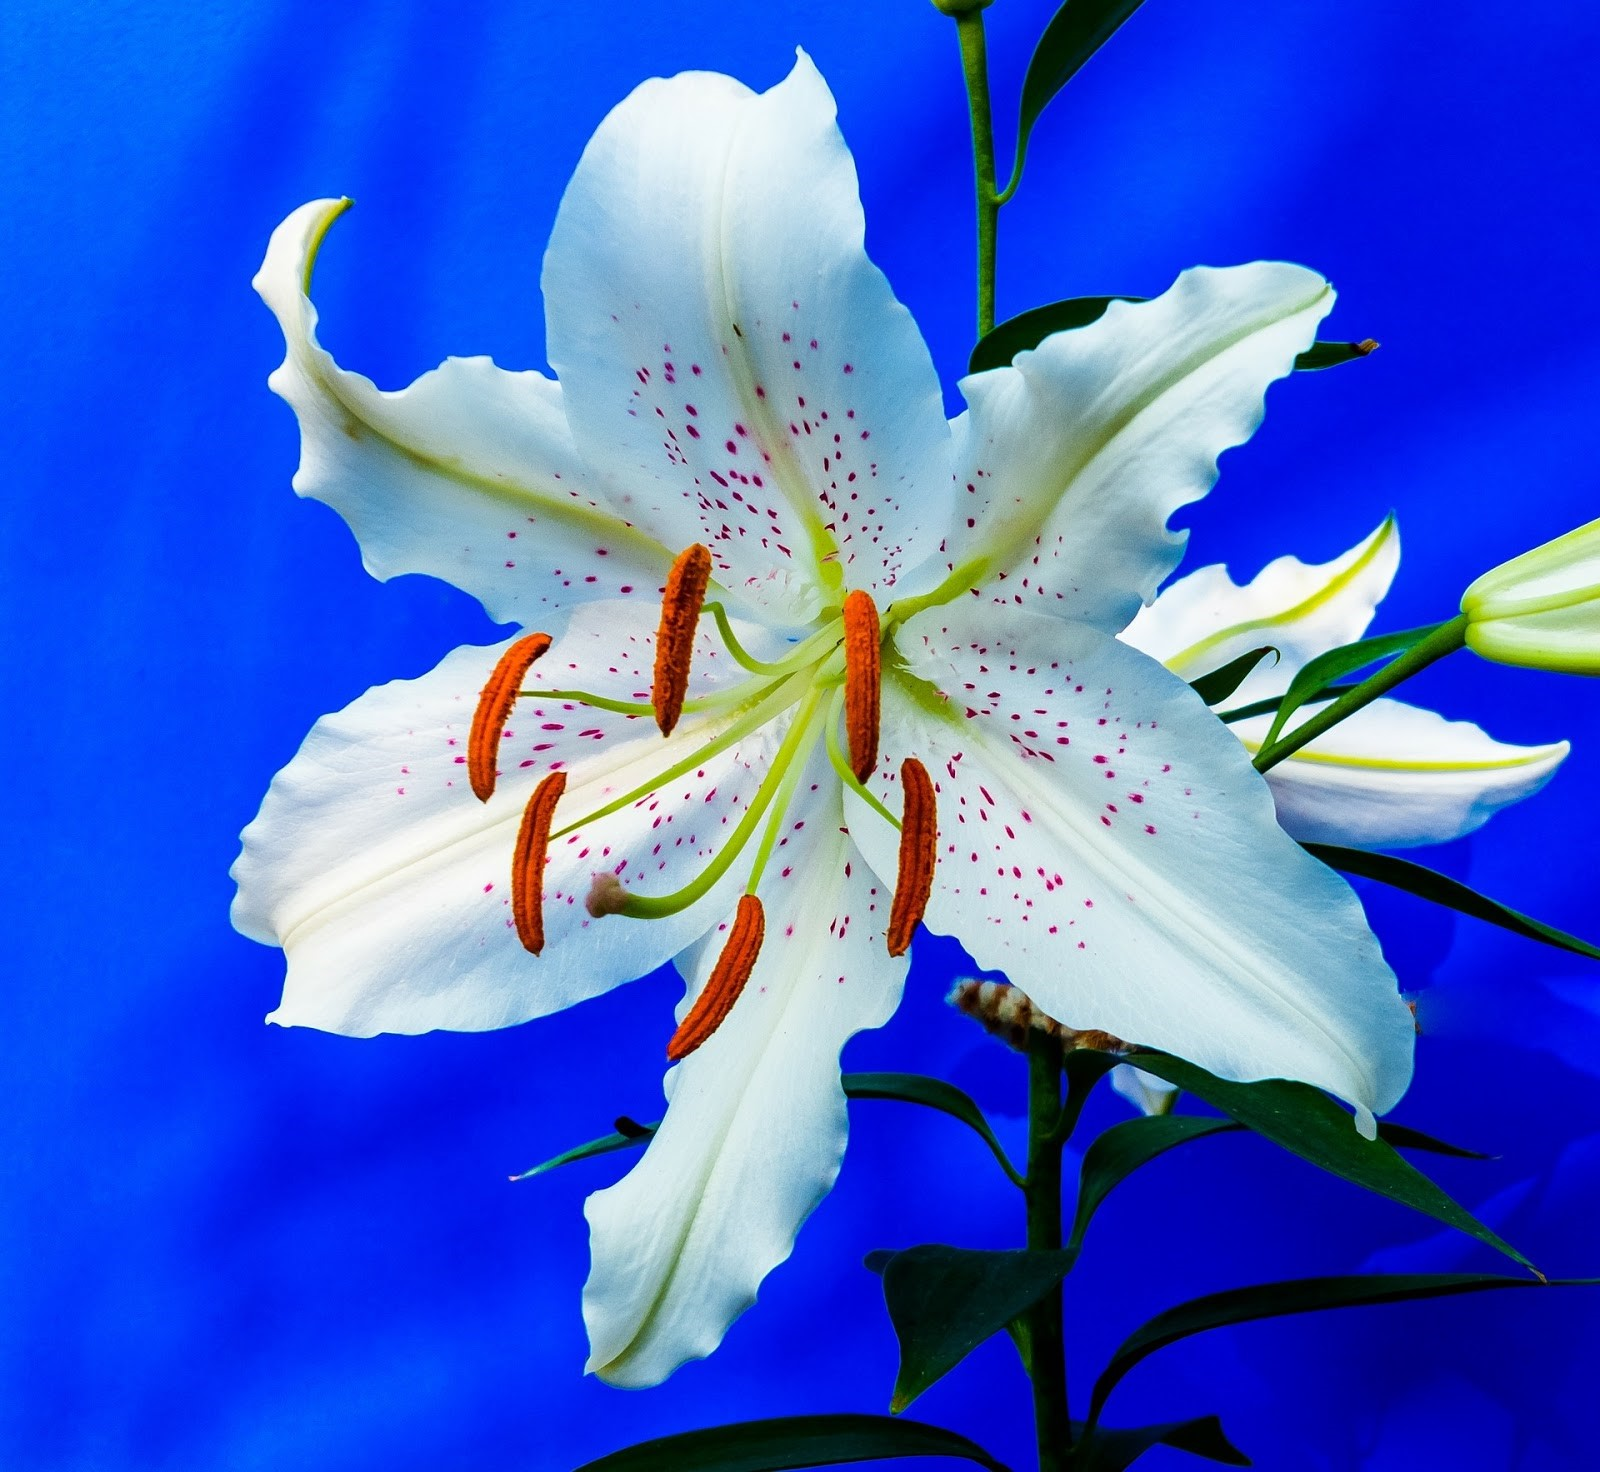 The 5 best summer flowers to plant mom blog society there are many different varieties of lilies they are perennial flowers that can be transplanted very easily once grown these flowers are resilient and izmirmasajfo